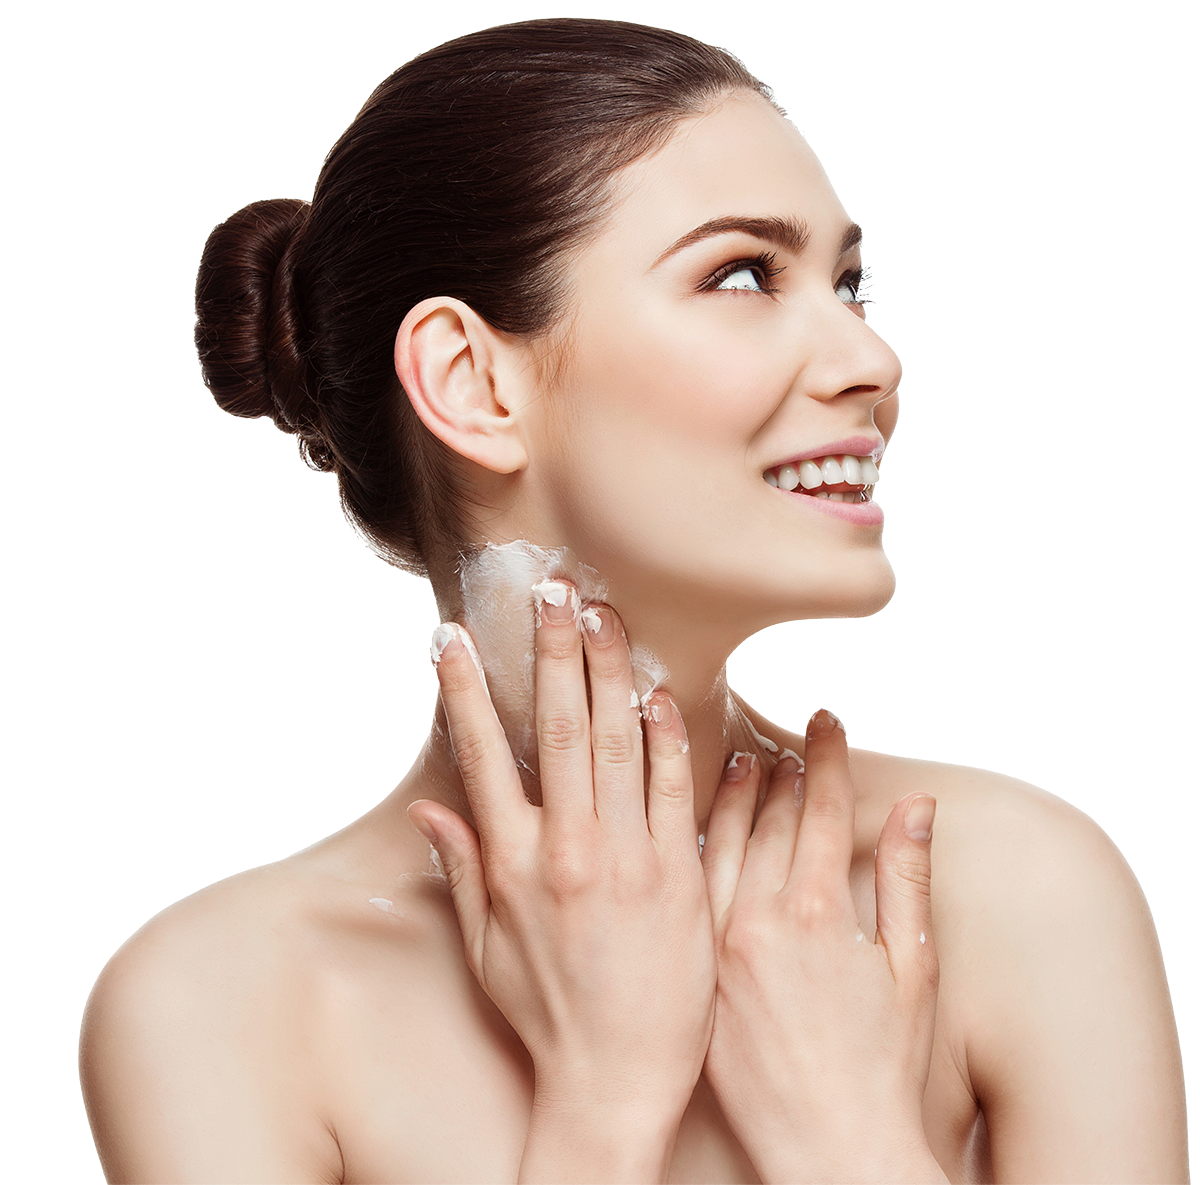 Woman slathering on moisturizer on neck, looking up to side of frame